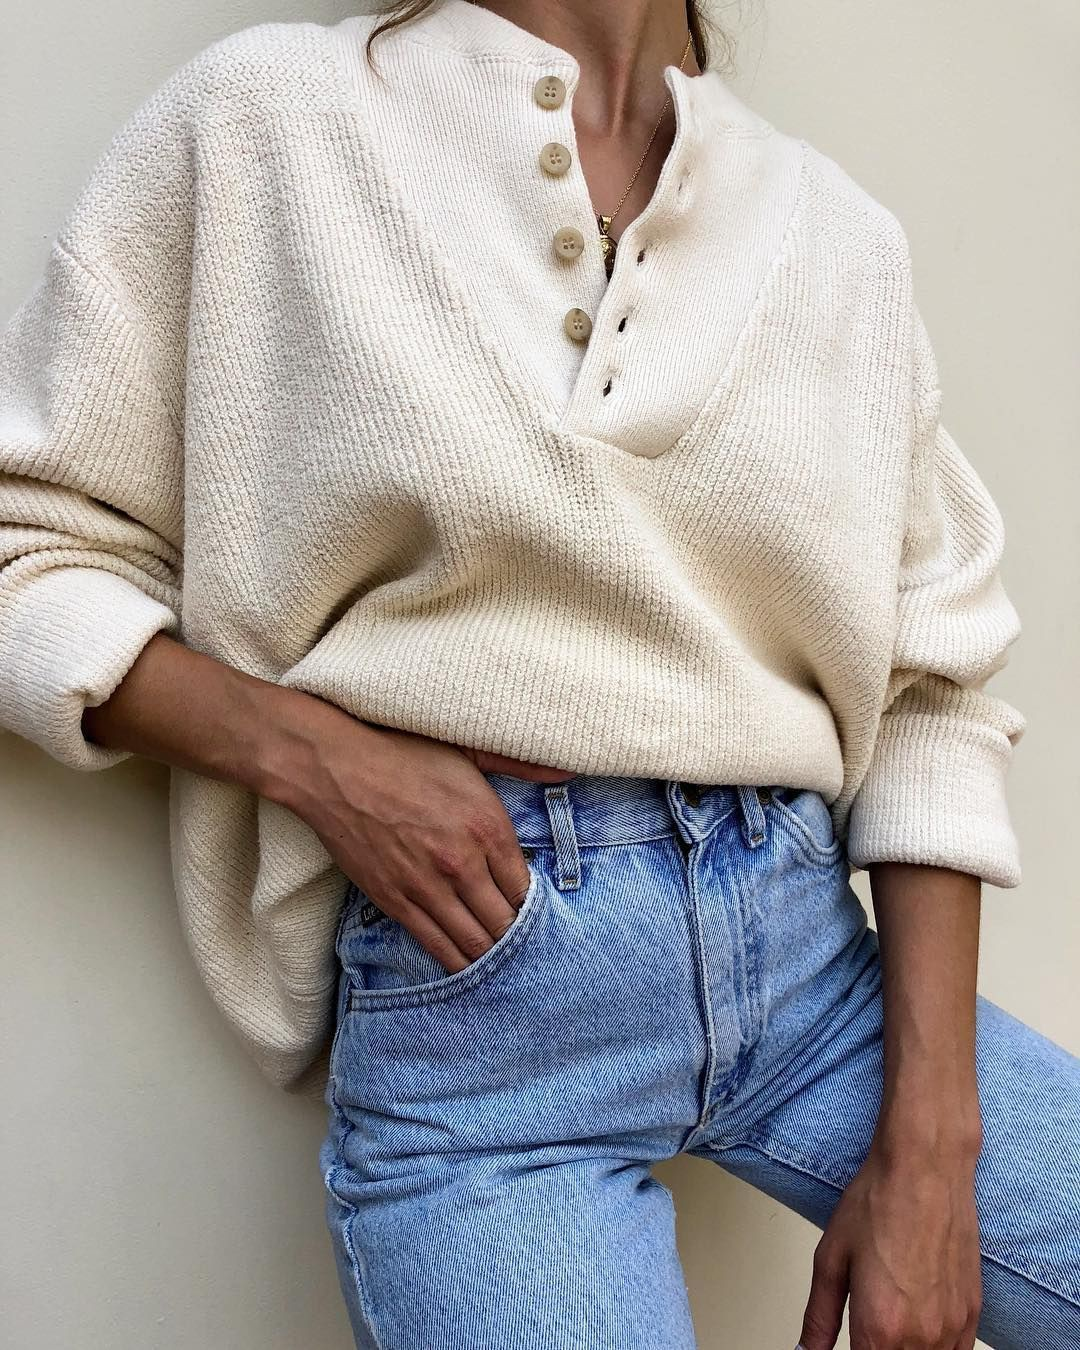 Beige and white colour ideas with sweater, denim